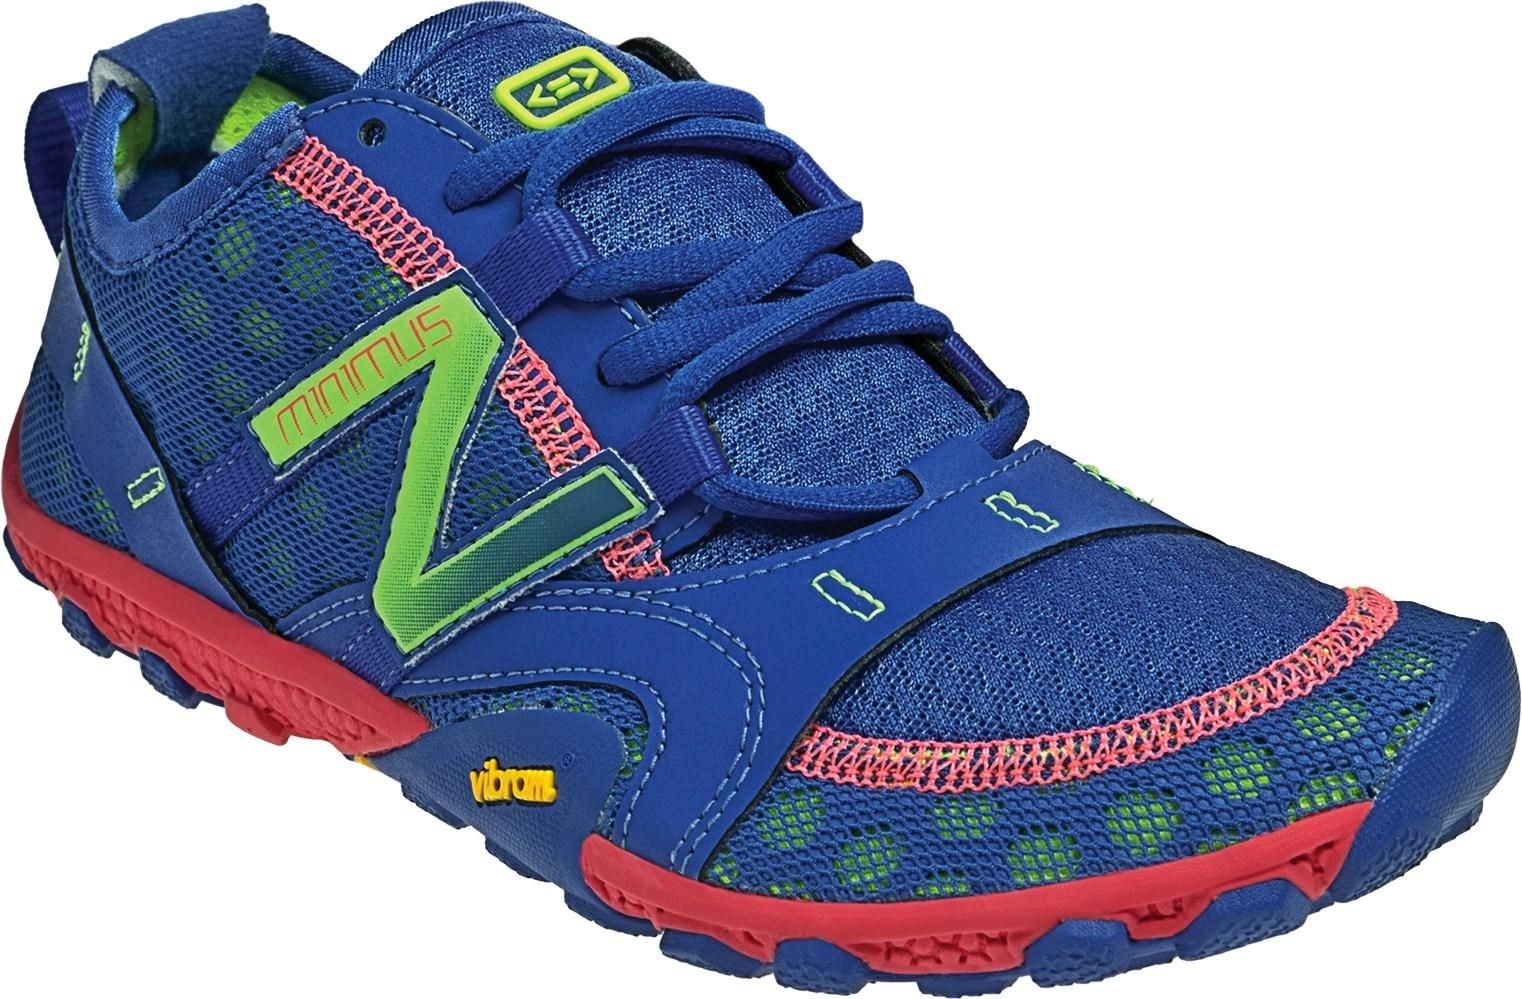 New Balance WT10v2 Minimus Trail Running Shoes Women's